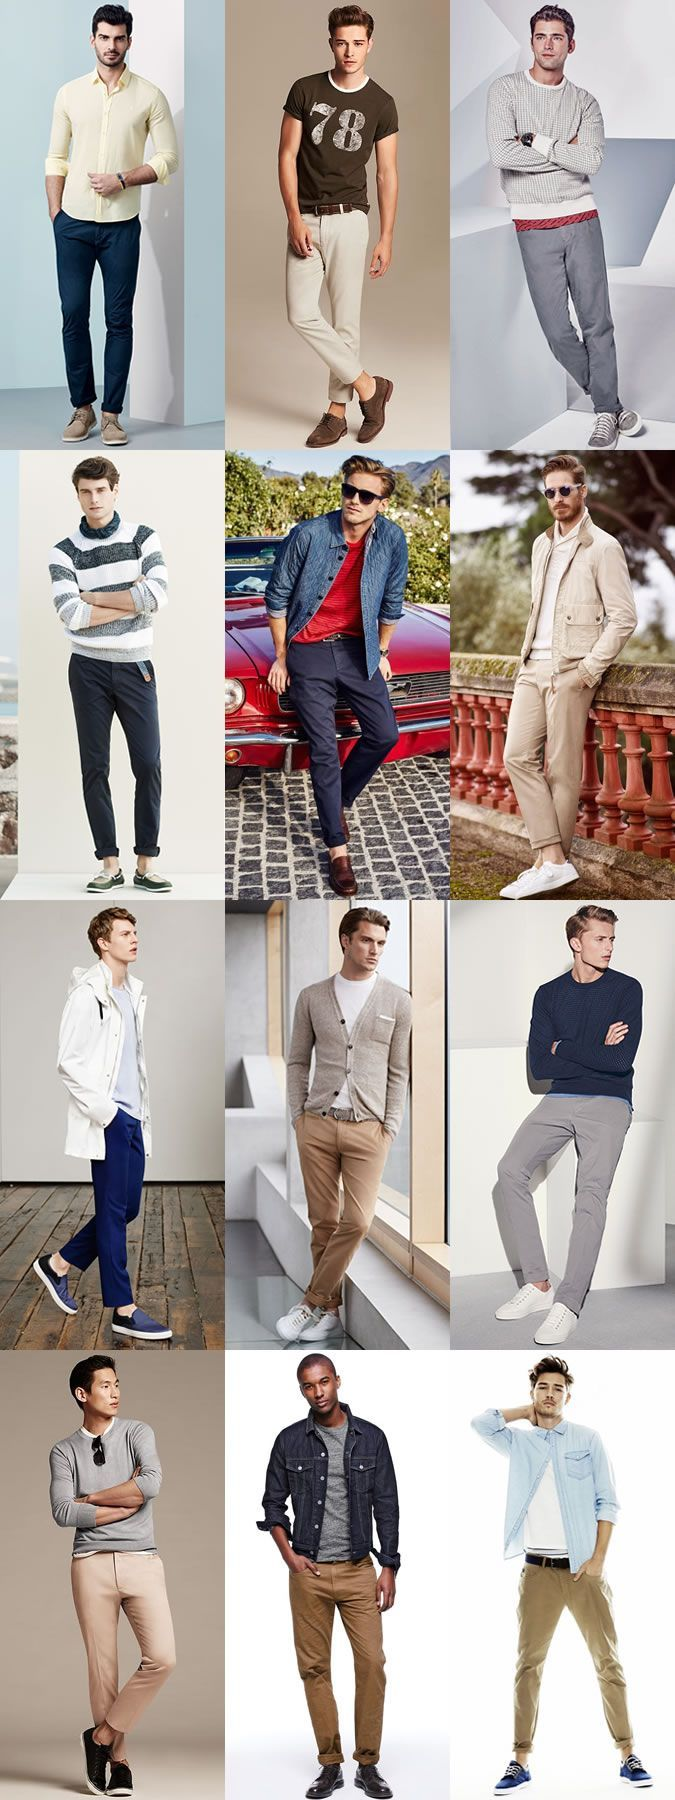 2015 Spring/Summer Men's Chinos Guide: Casual Style Lookbook Inspiration #MensFashionChinos